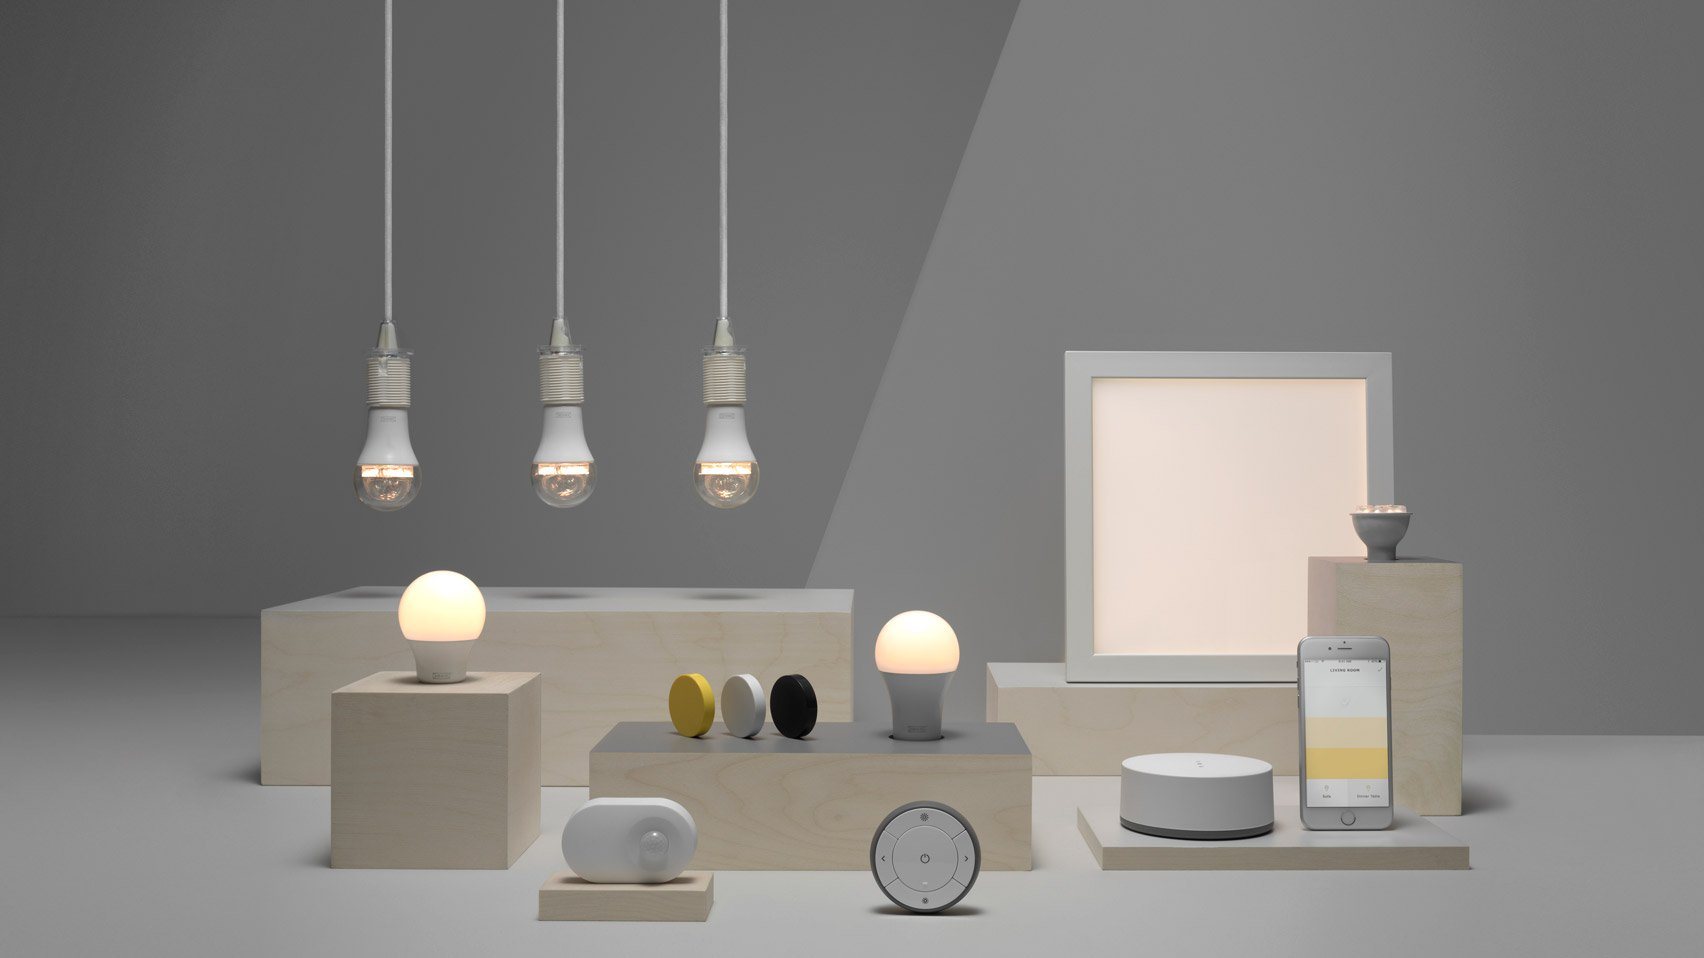 ikea tr dfri smart lights will get support for assistant and alexa later this year. Black Bedroom Furniture Sets. Home Design Ideas